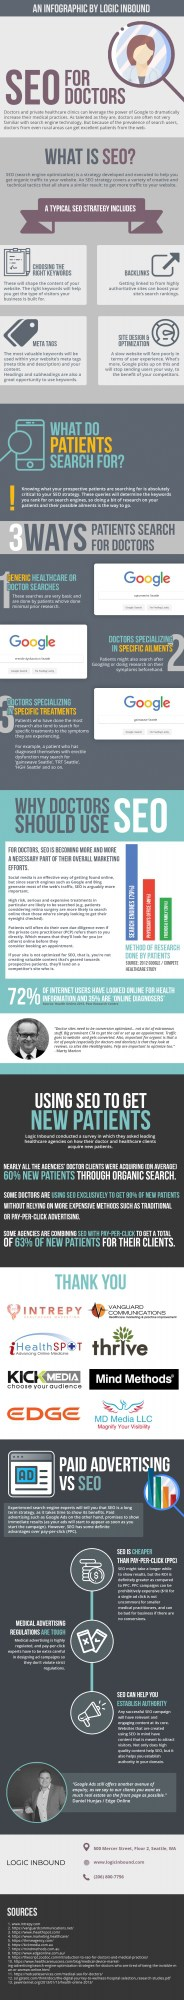 seo-for-doctors-infographic-1 SEO for Doctors - Infographic